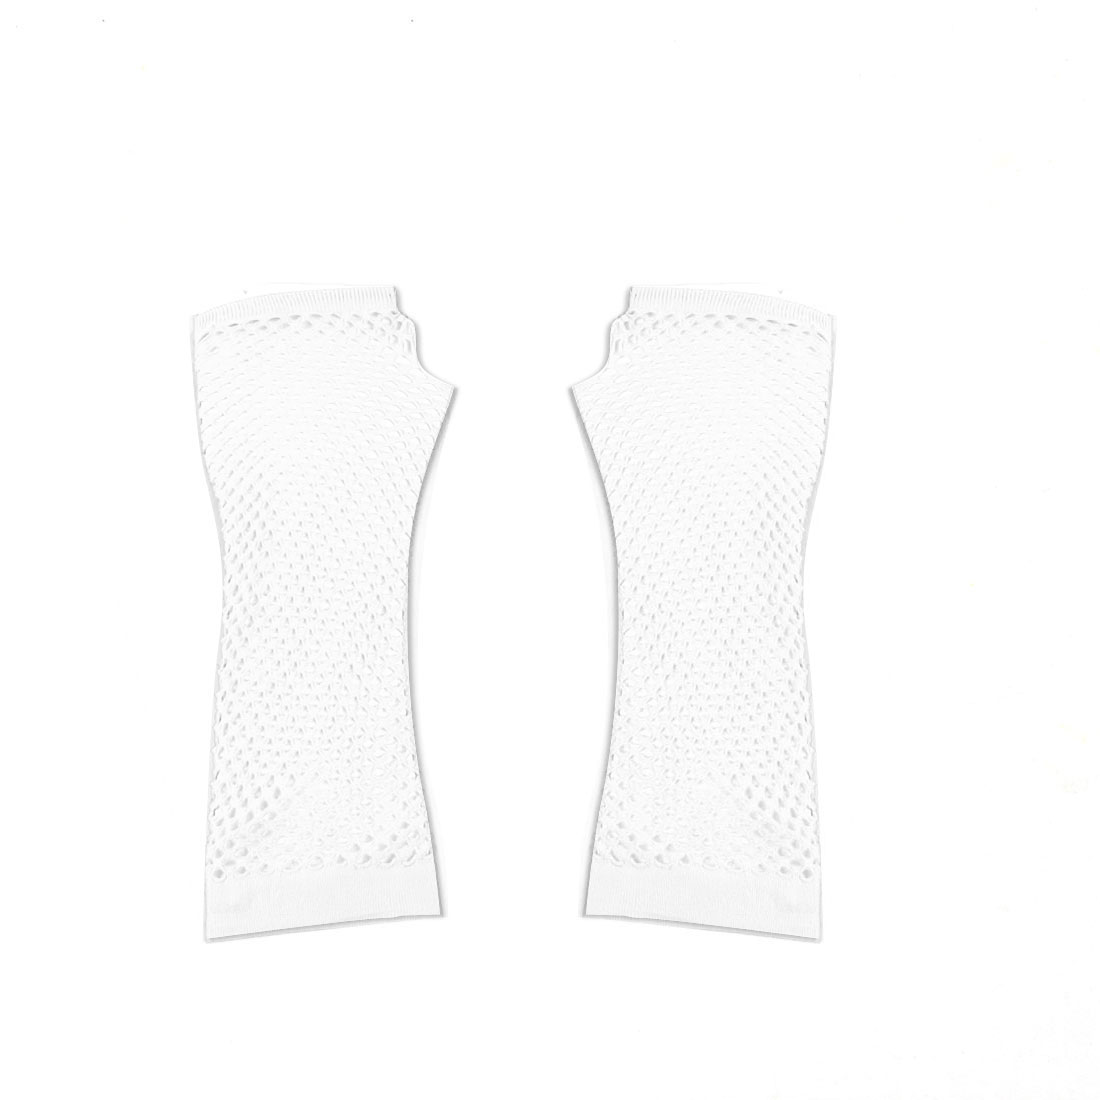 Pair White Stretchy Mesh Fishnet Elbow Fingerless Goth Arm Warmers for Lady